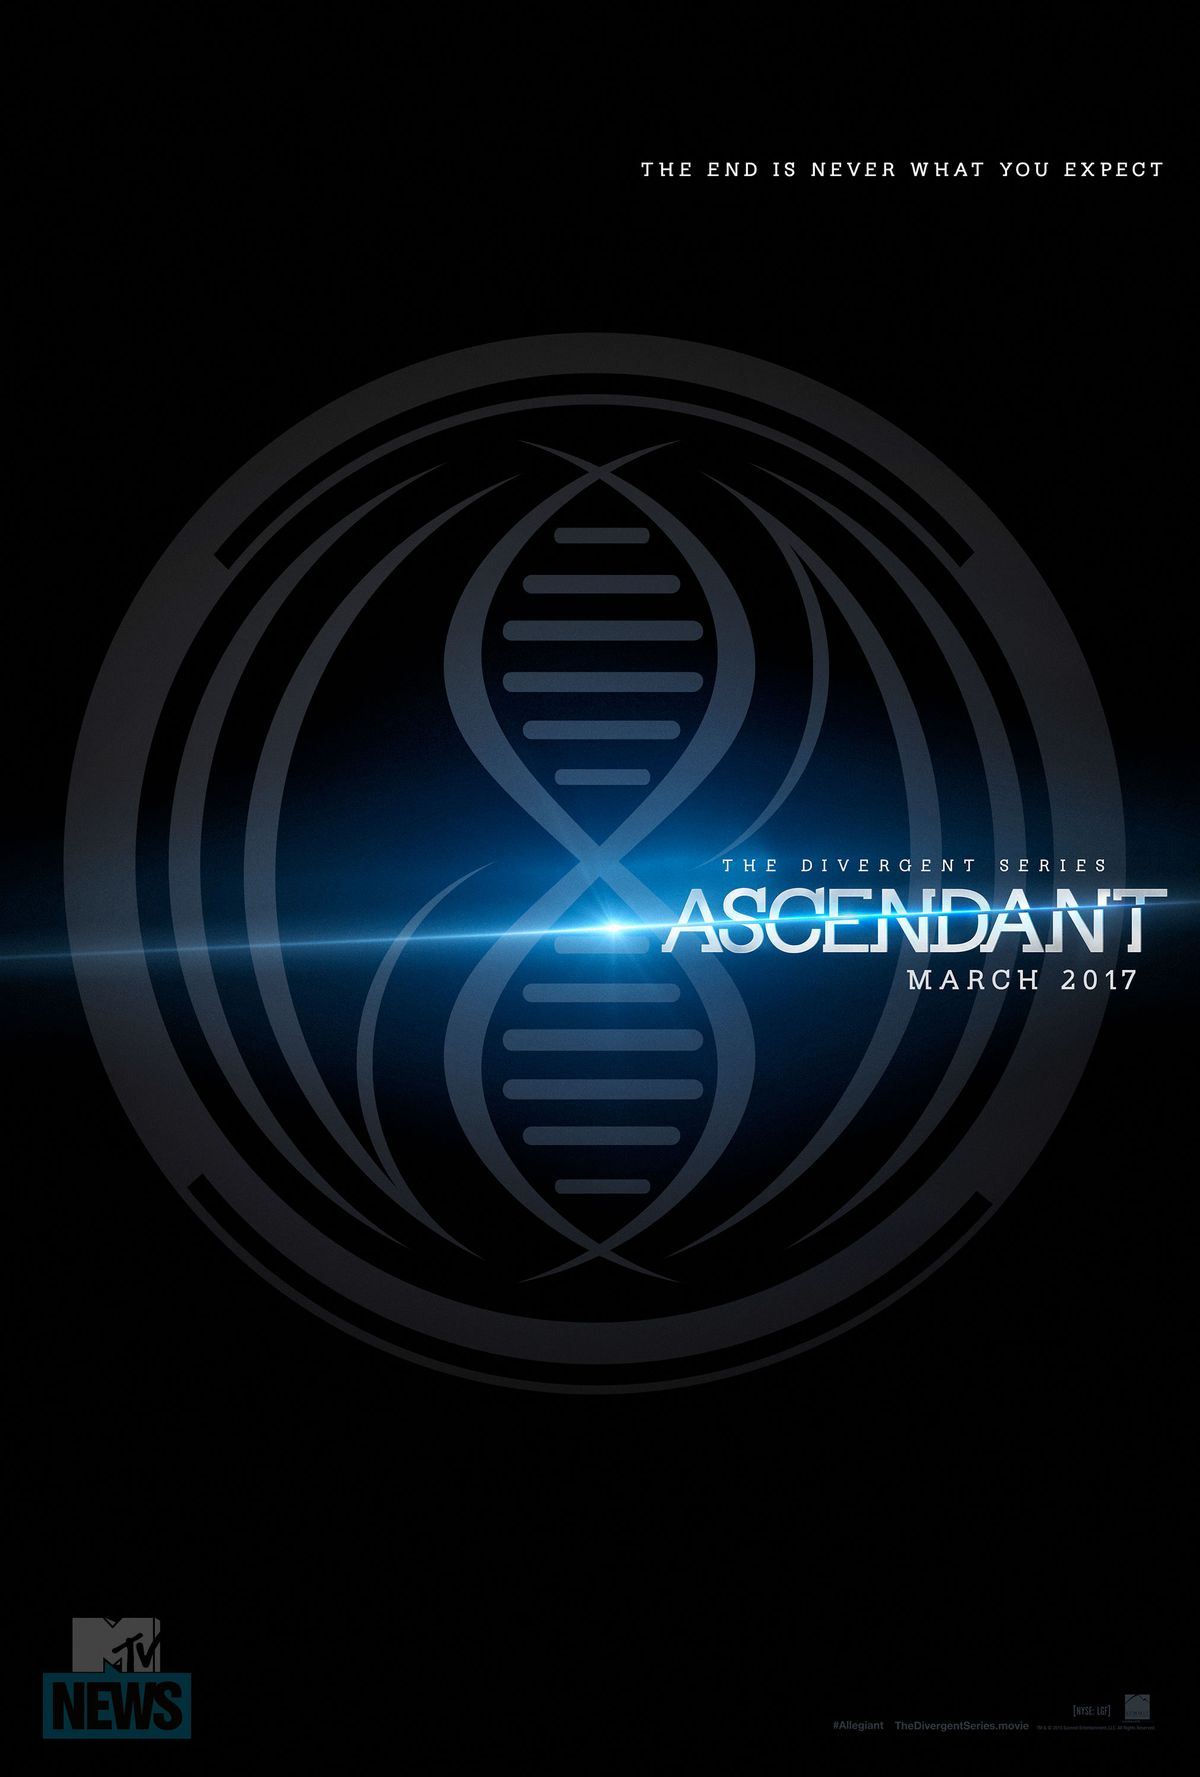 The Divergent Series: Ascendant Logo